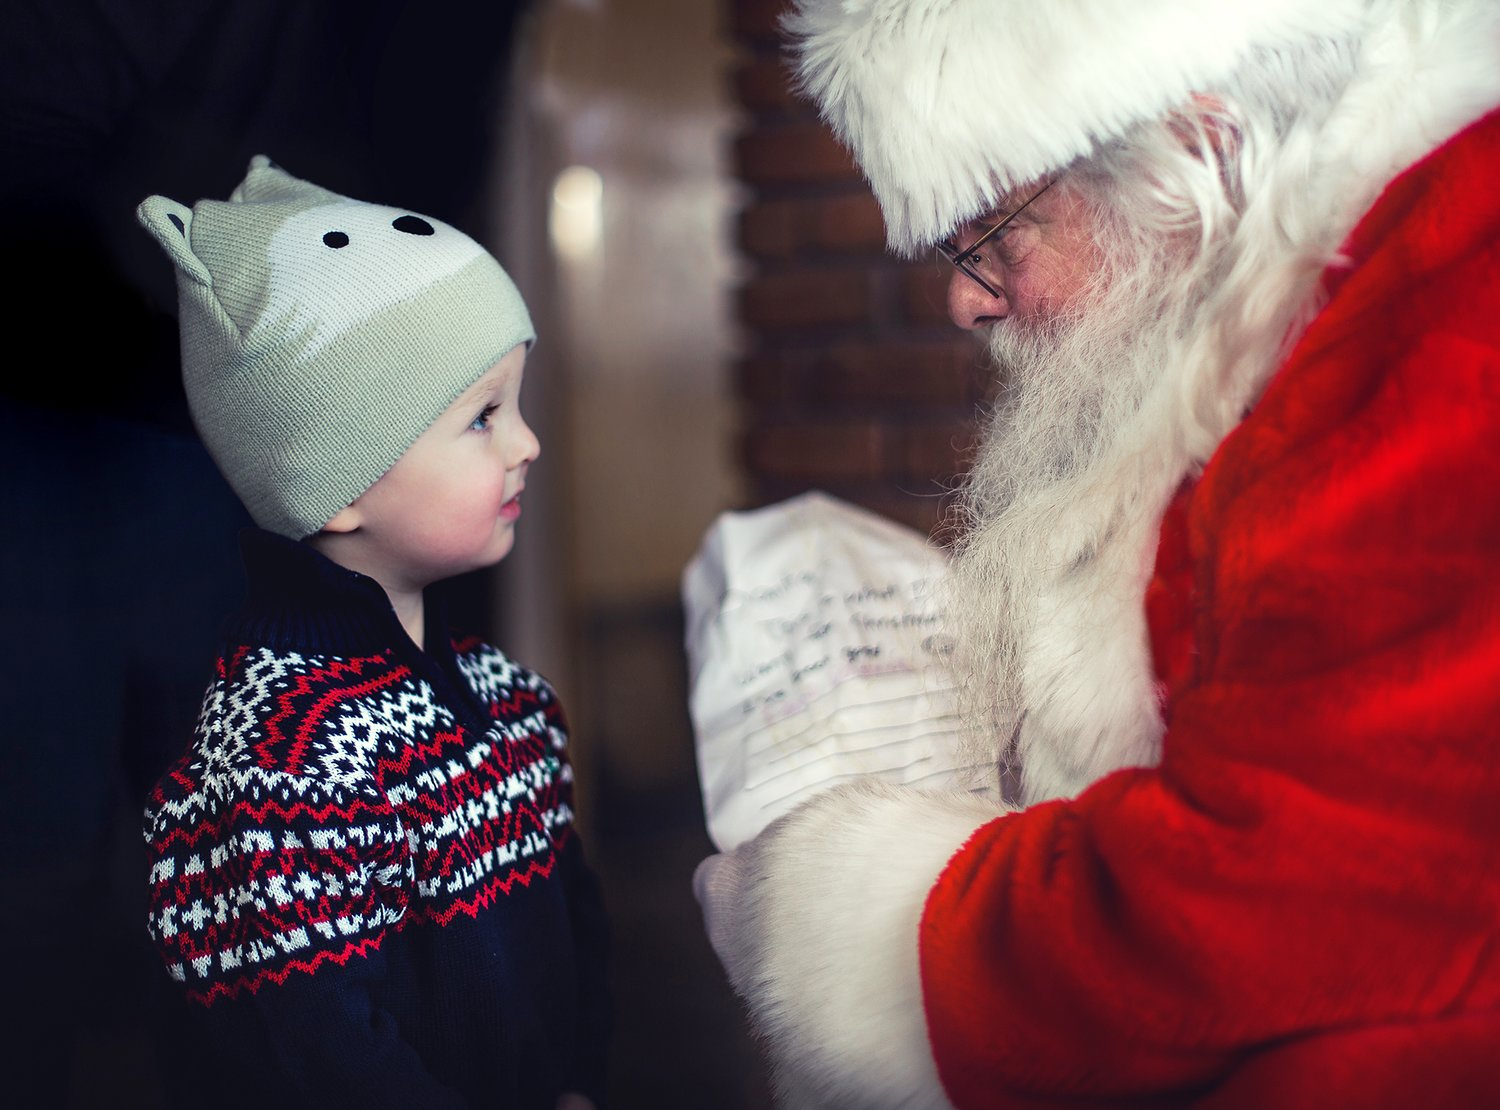 Santa can be hard to understand. We asked a few local parents whether they could explain the mysteries of how the big guy in red is running his operation.